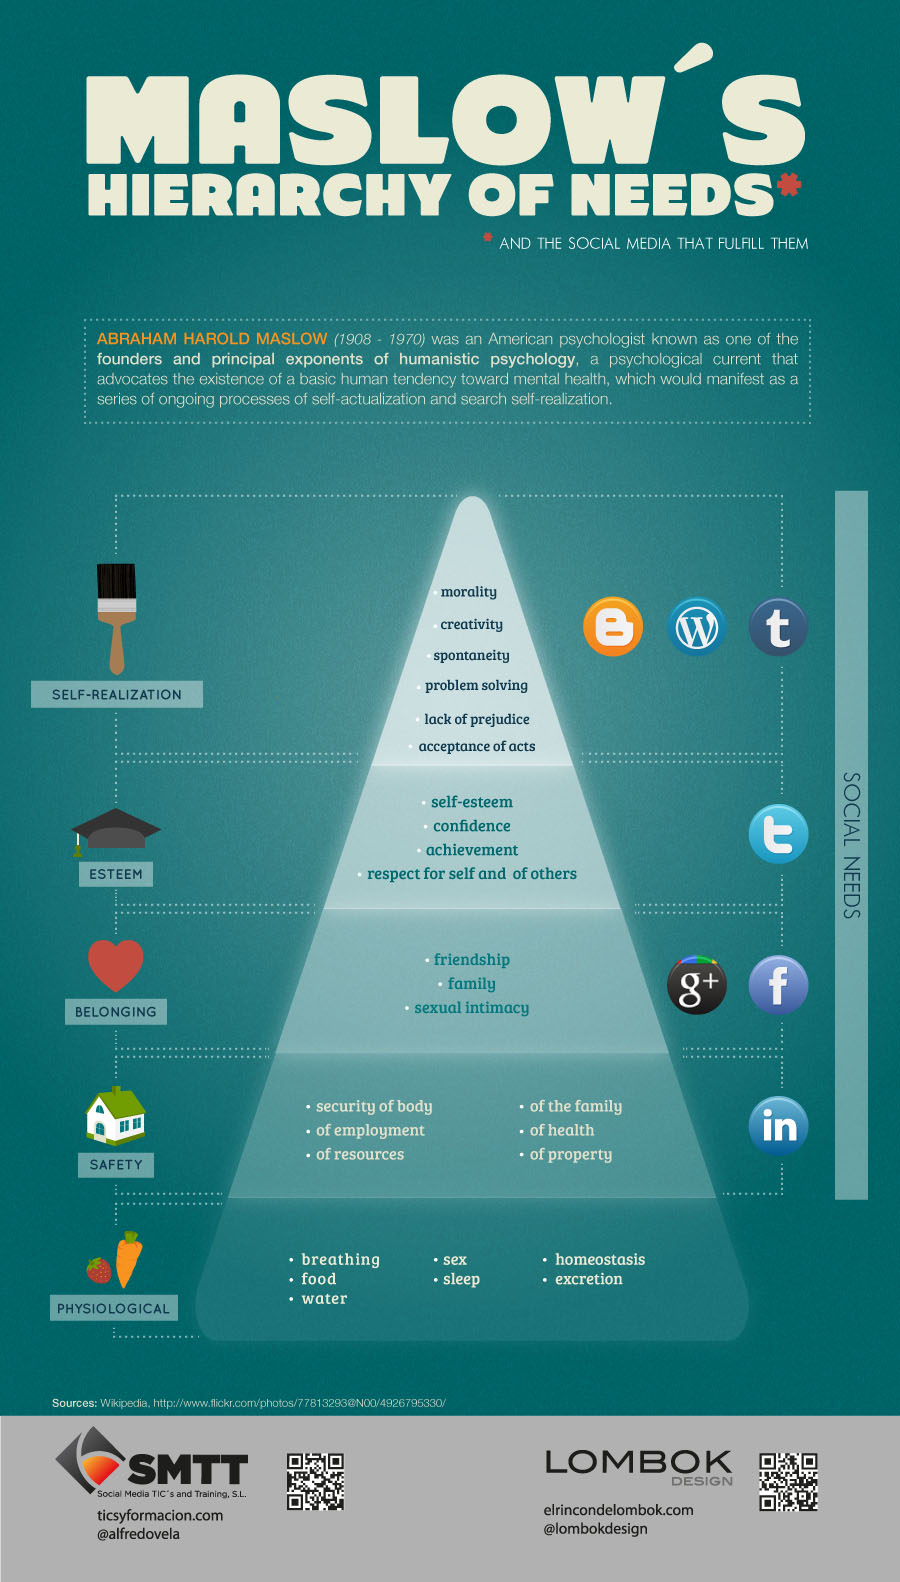 Social Media And Maslow's Hierarchy